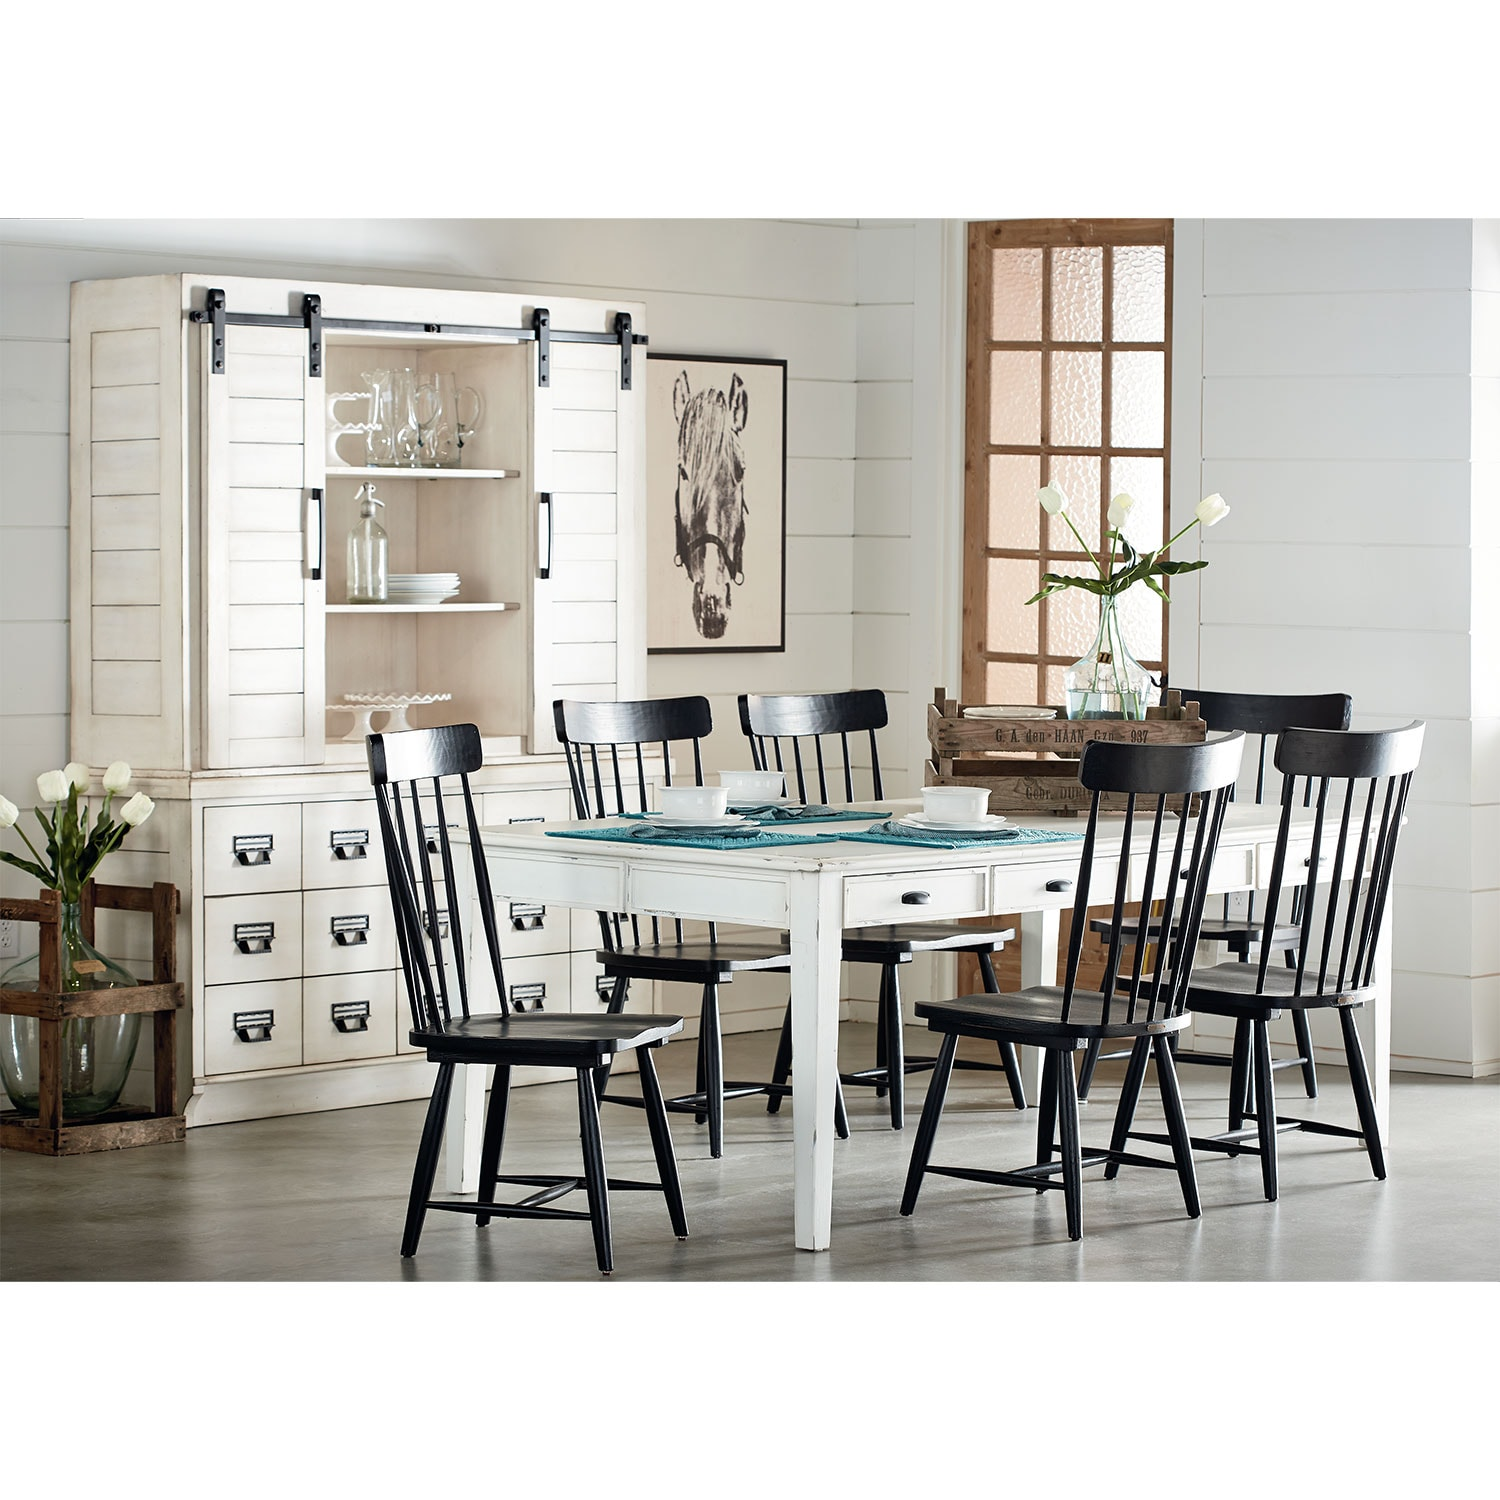 Shop All Furniture American Signature Furniture